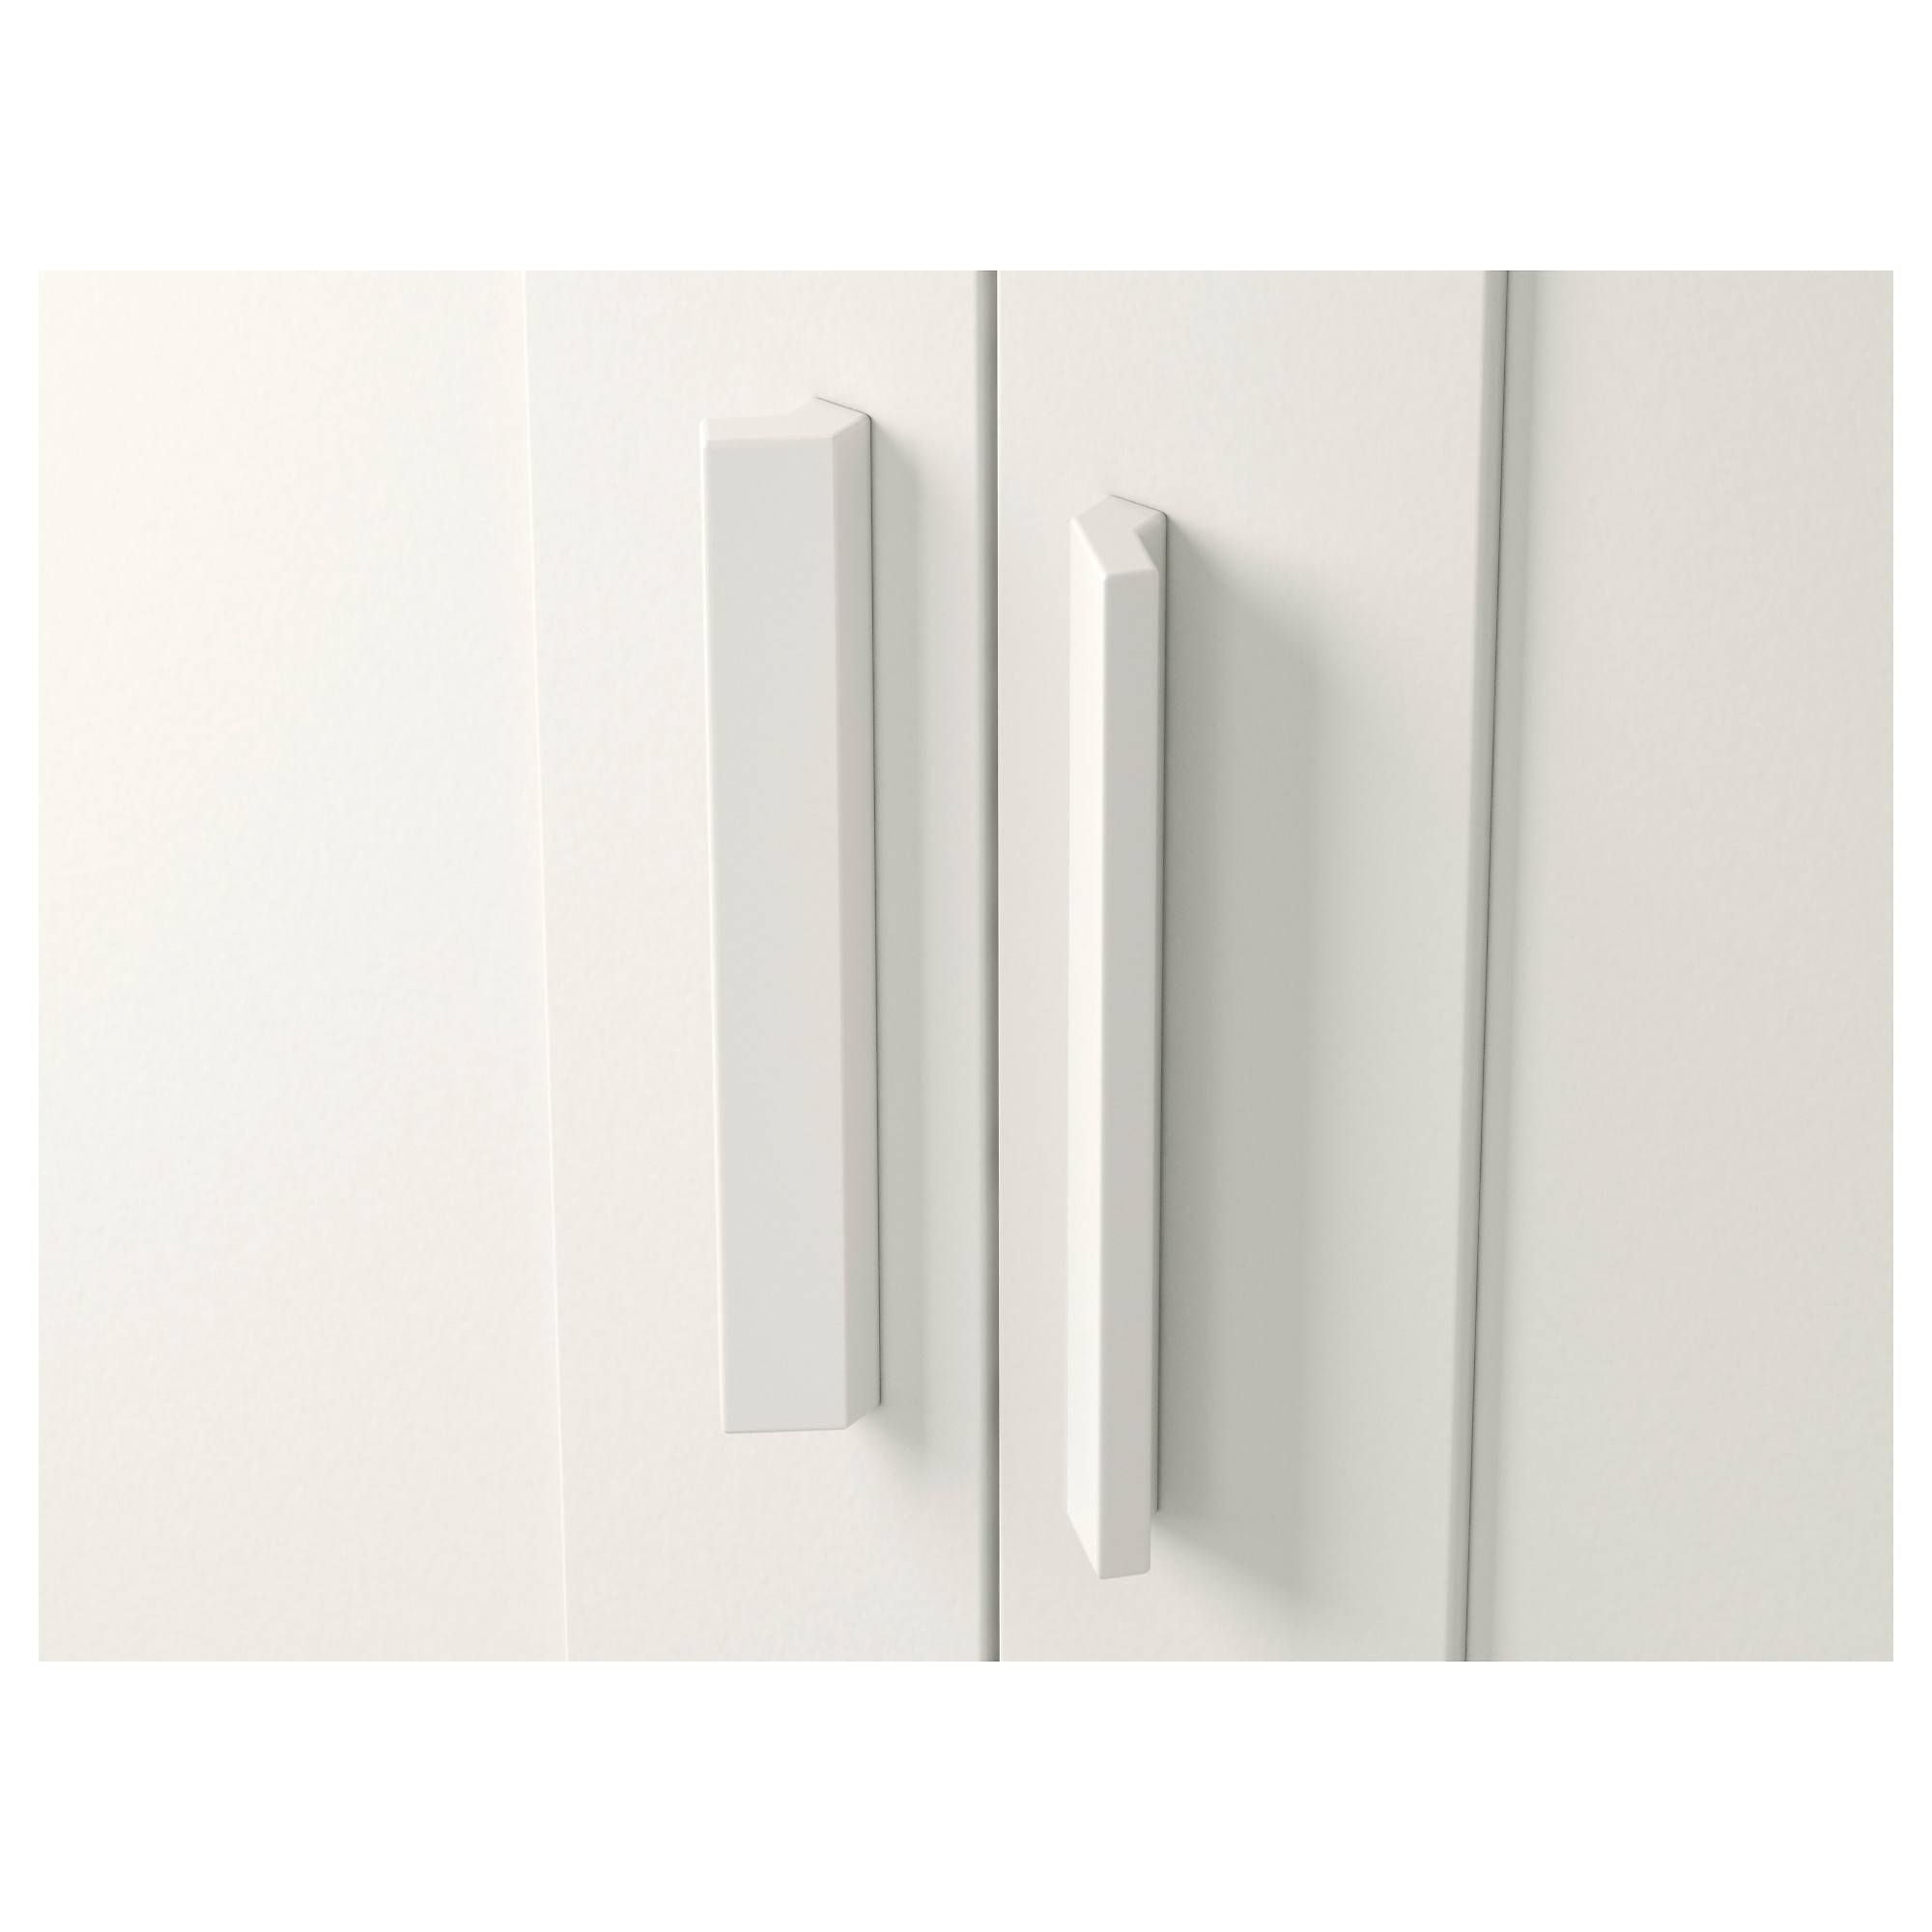 Brimnes Wardrobe With 2 Doors White 78X190 Cm - Ikea with regard to Two Door White Wardrobes (Image 1 of 15)